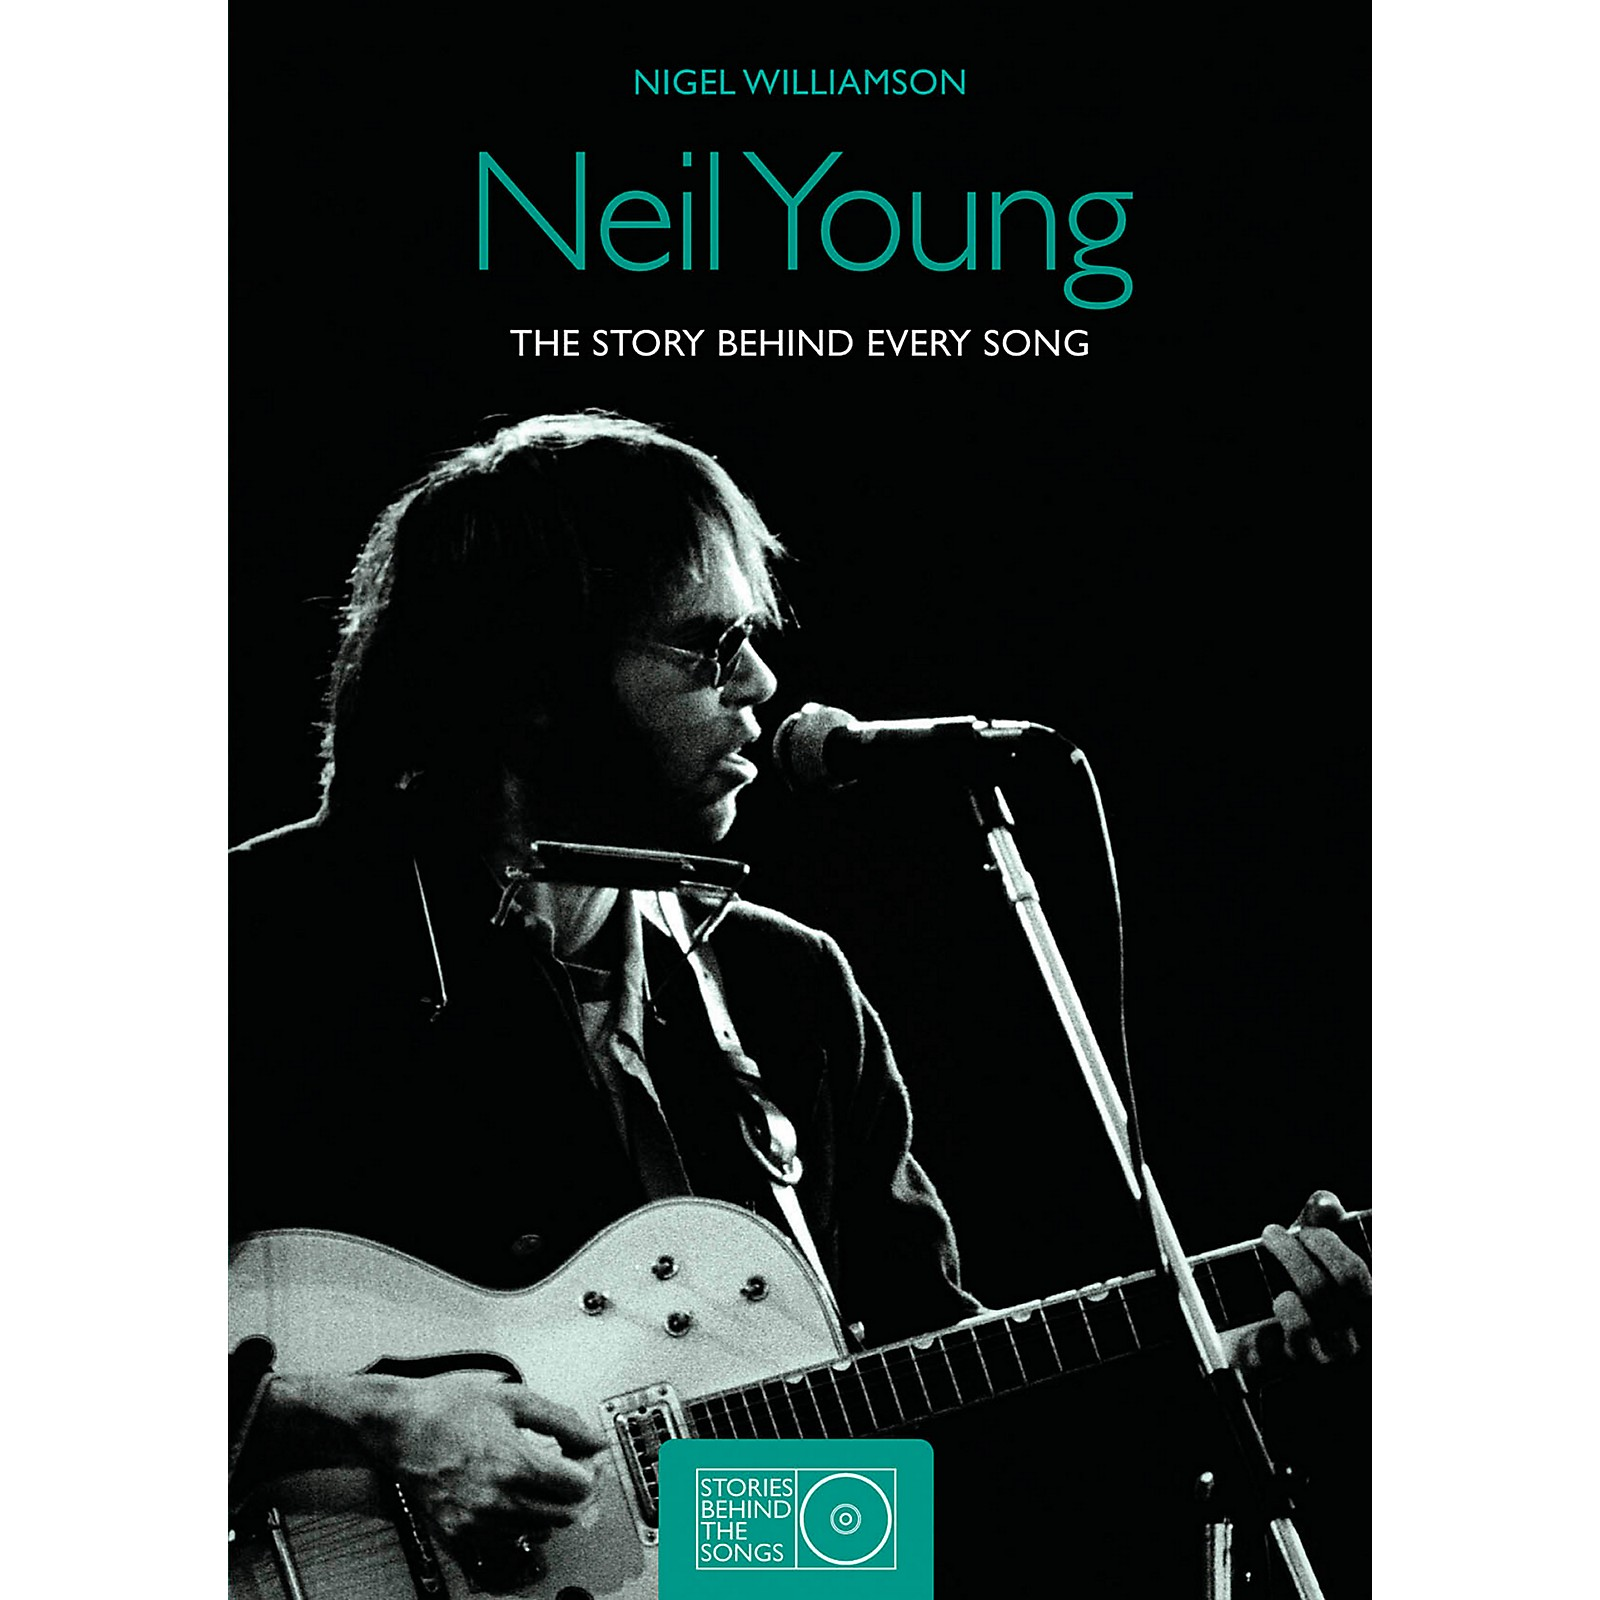 Hal Leonard Neil Young The Story Behind Every Song 1966 - 1992